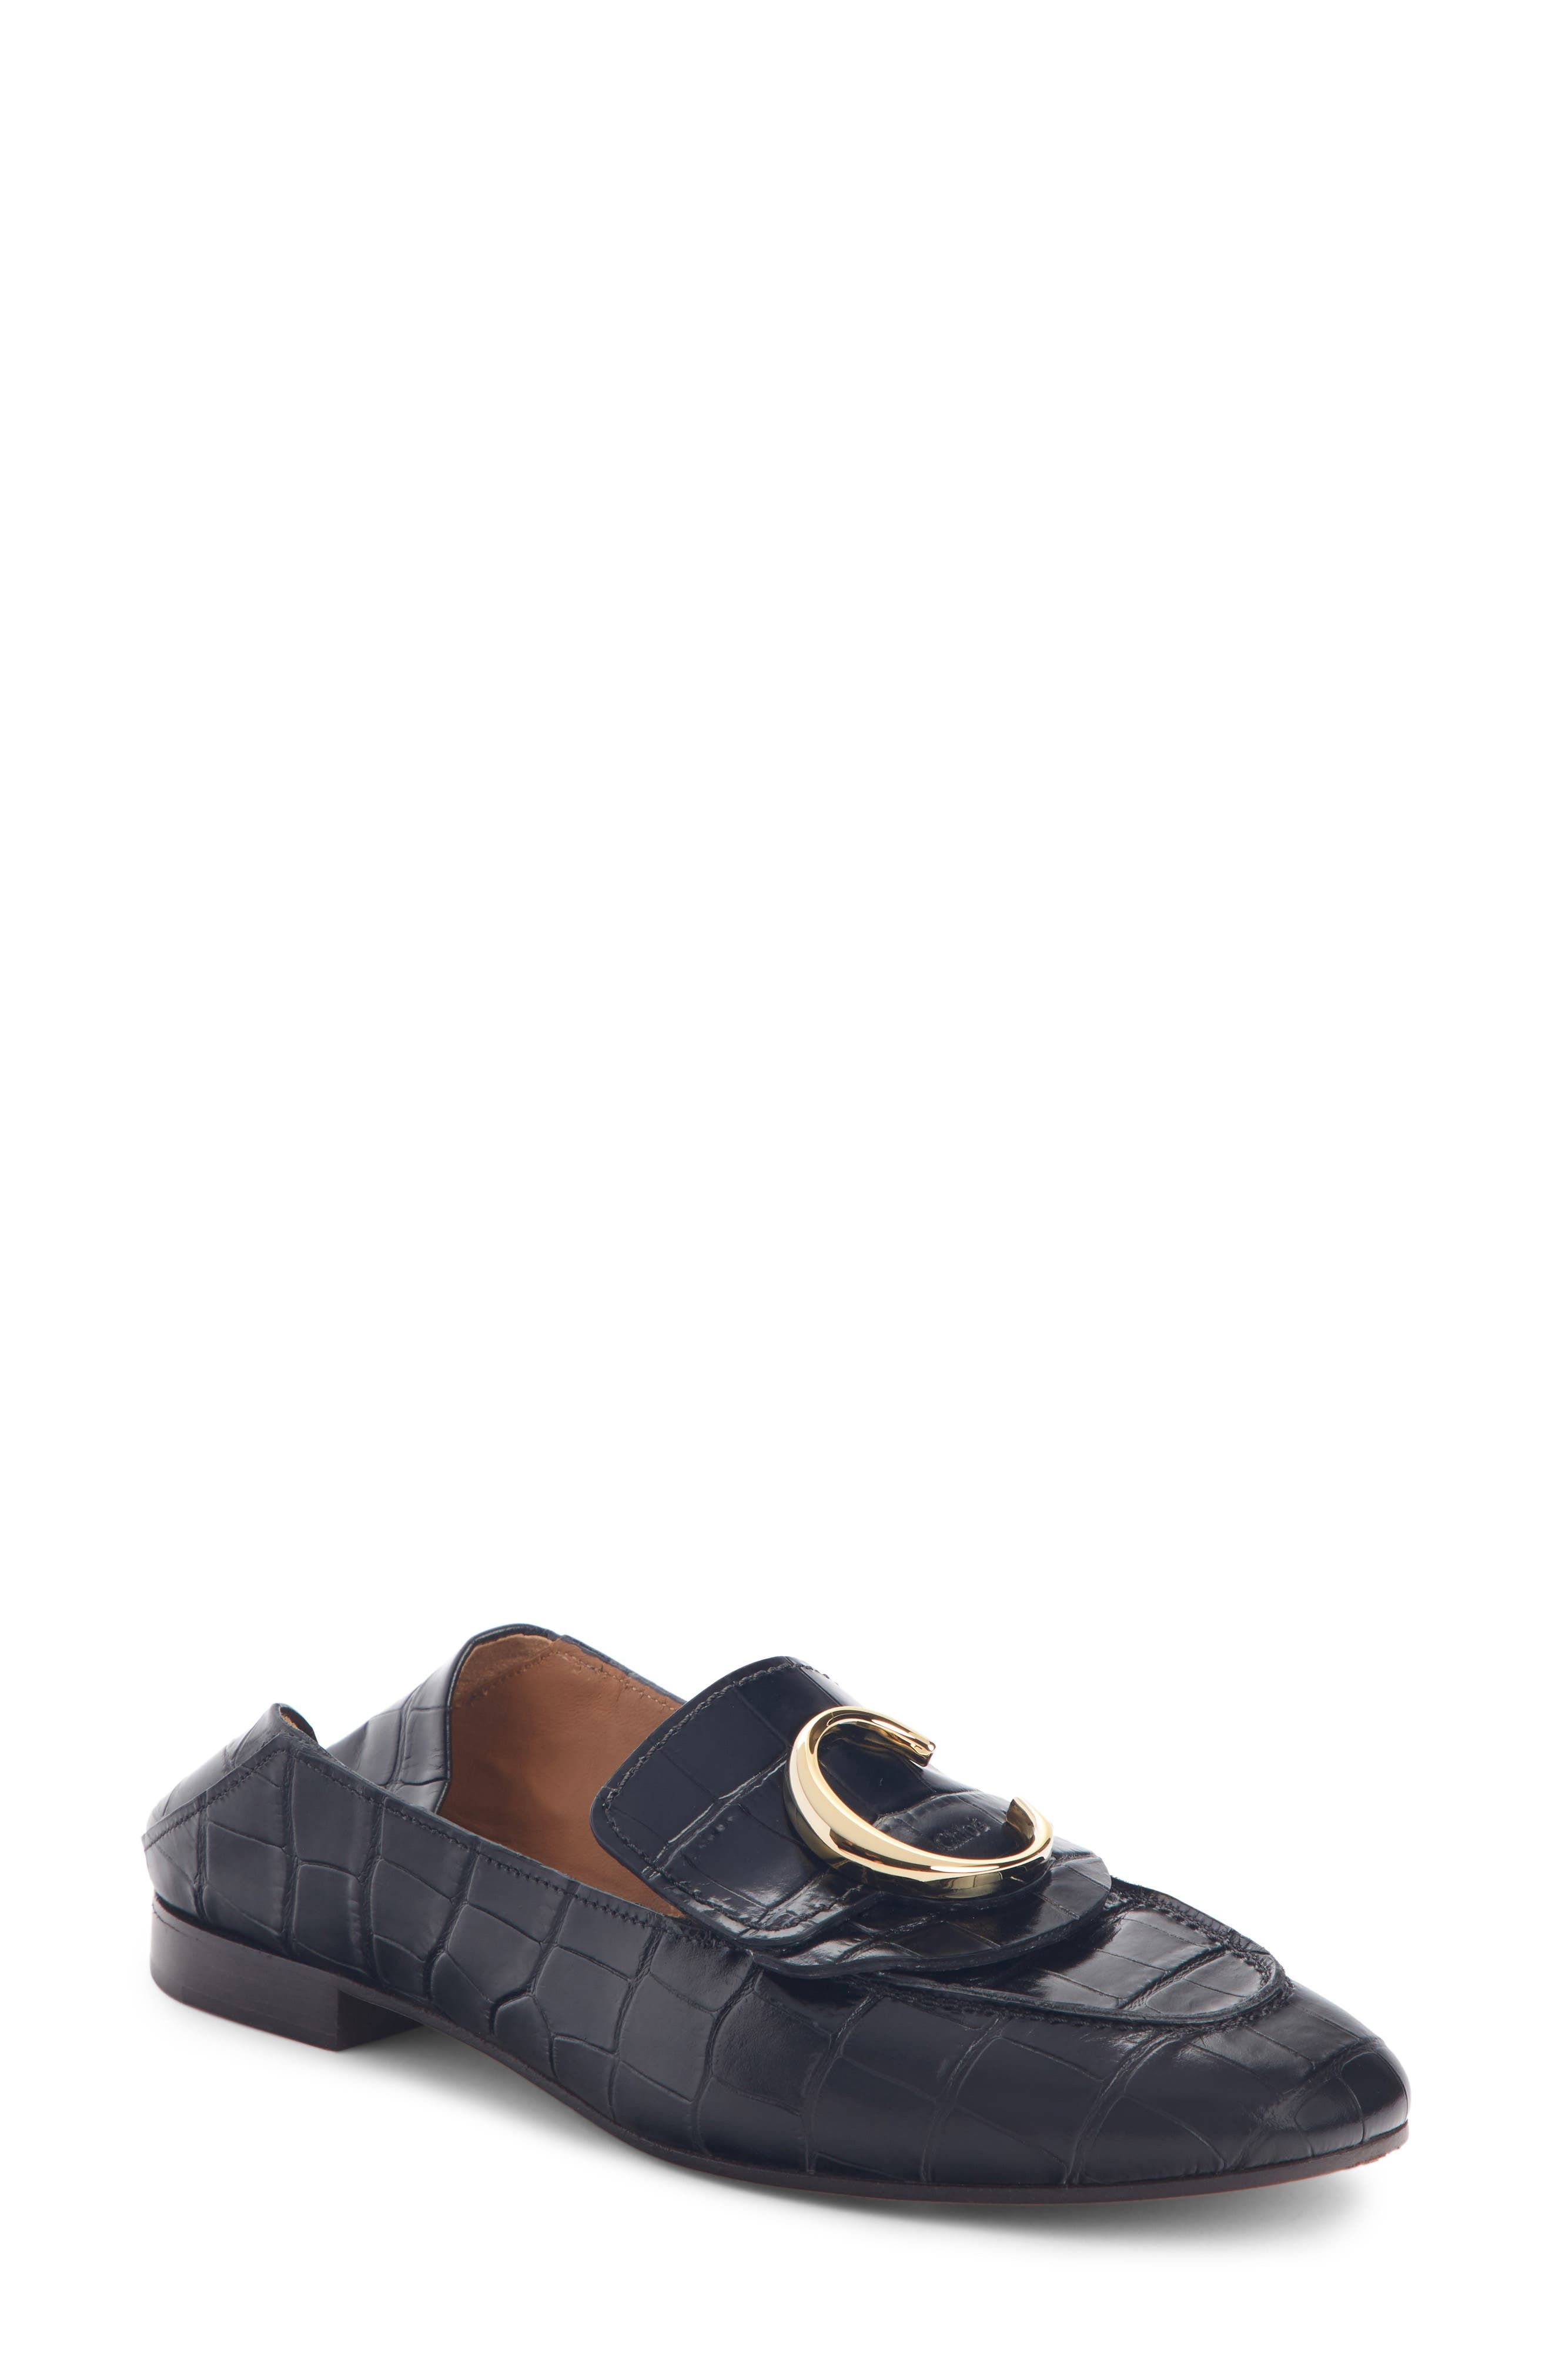 C Croc-Embossed Convertible Loafer, Main, color, BLACK